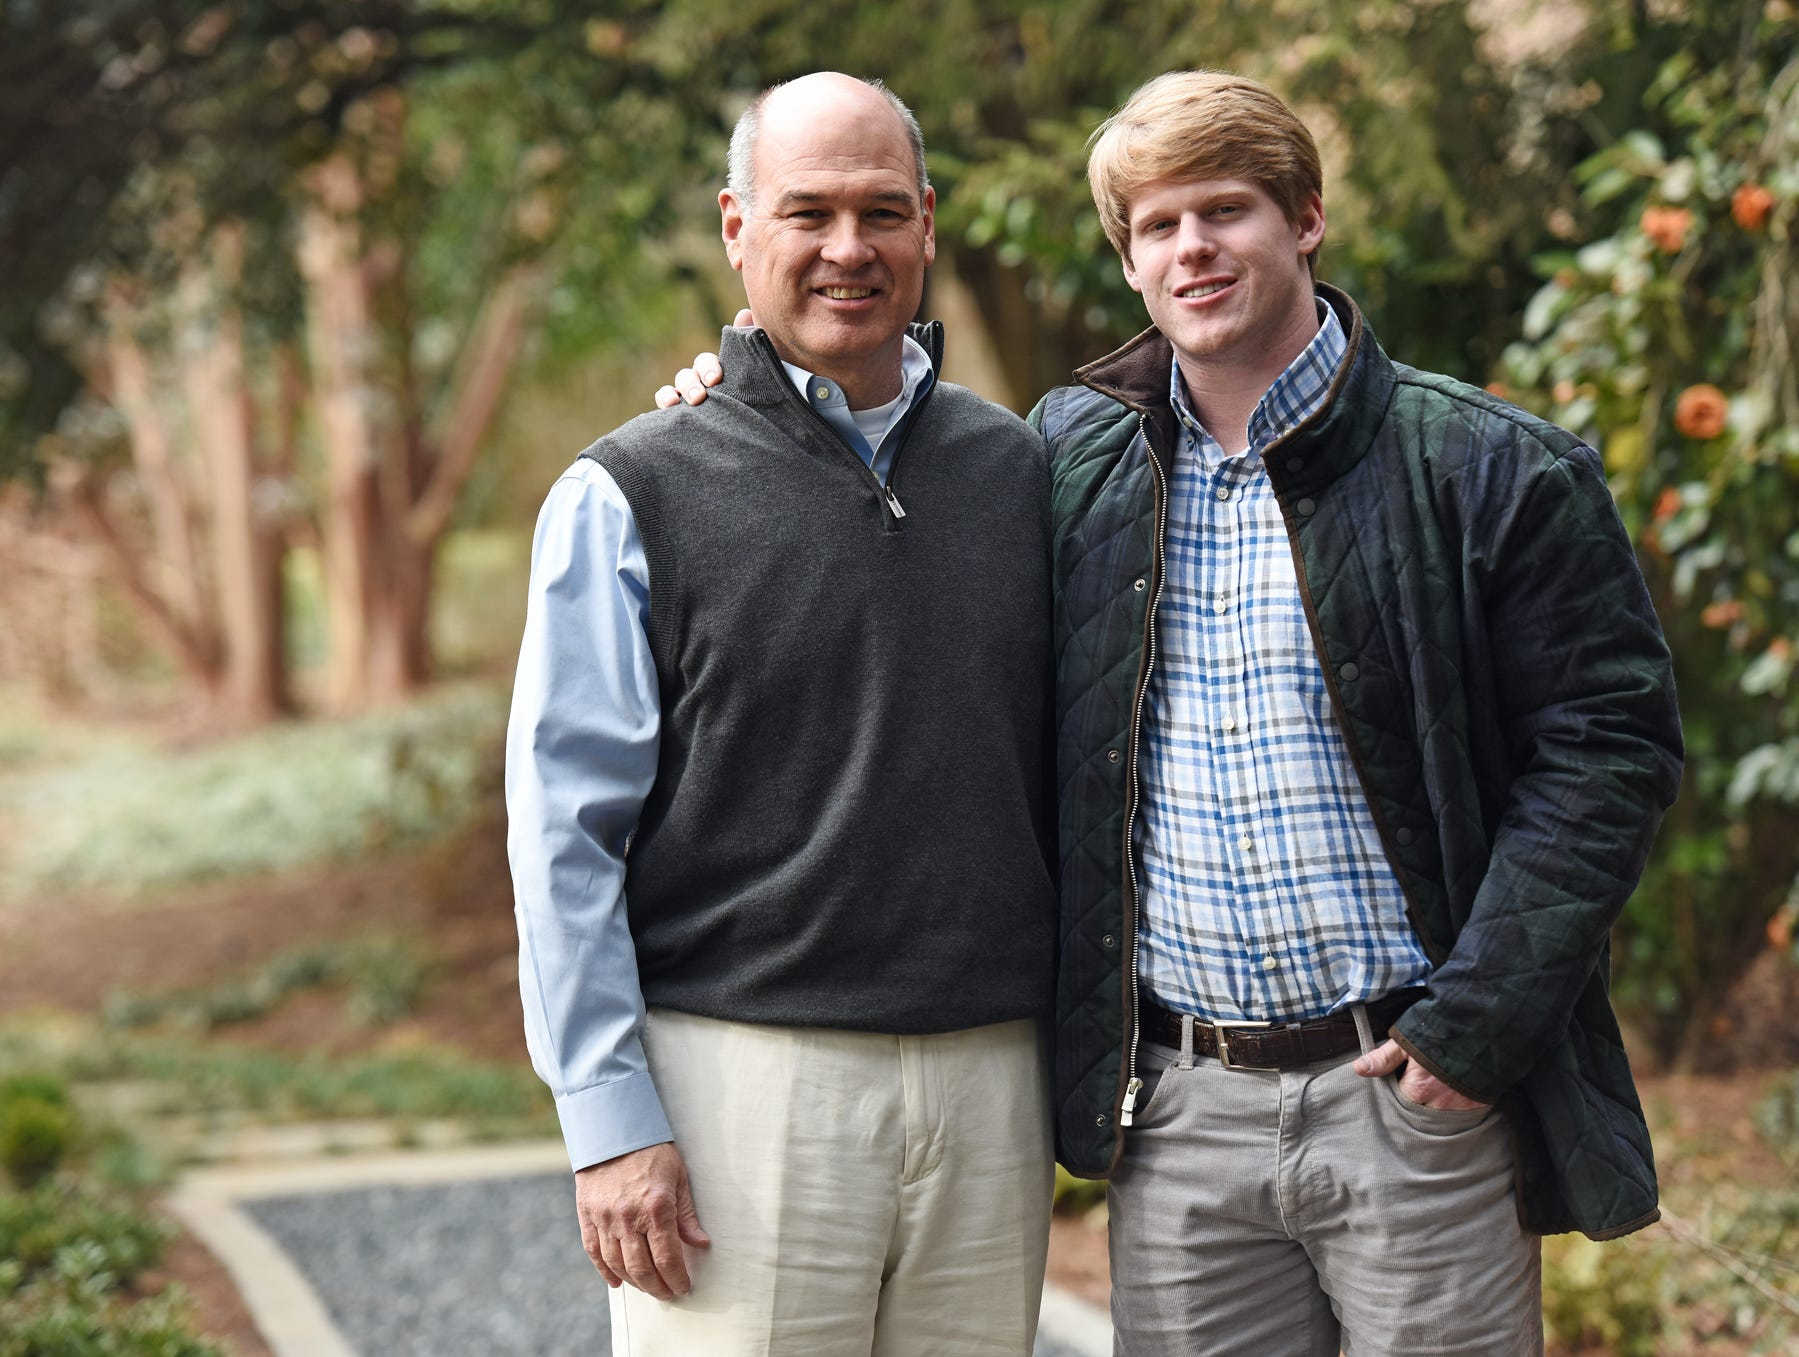 Will Wynkoop, right, and his mentor Walter Tollison at Tollison's home in Greenville.